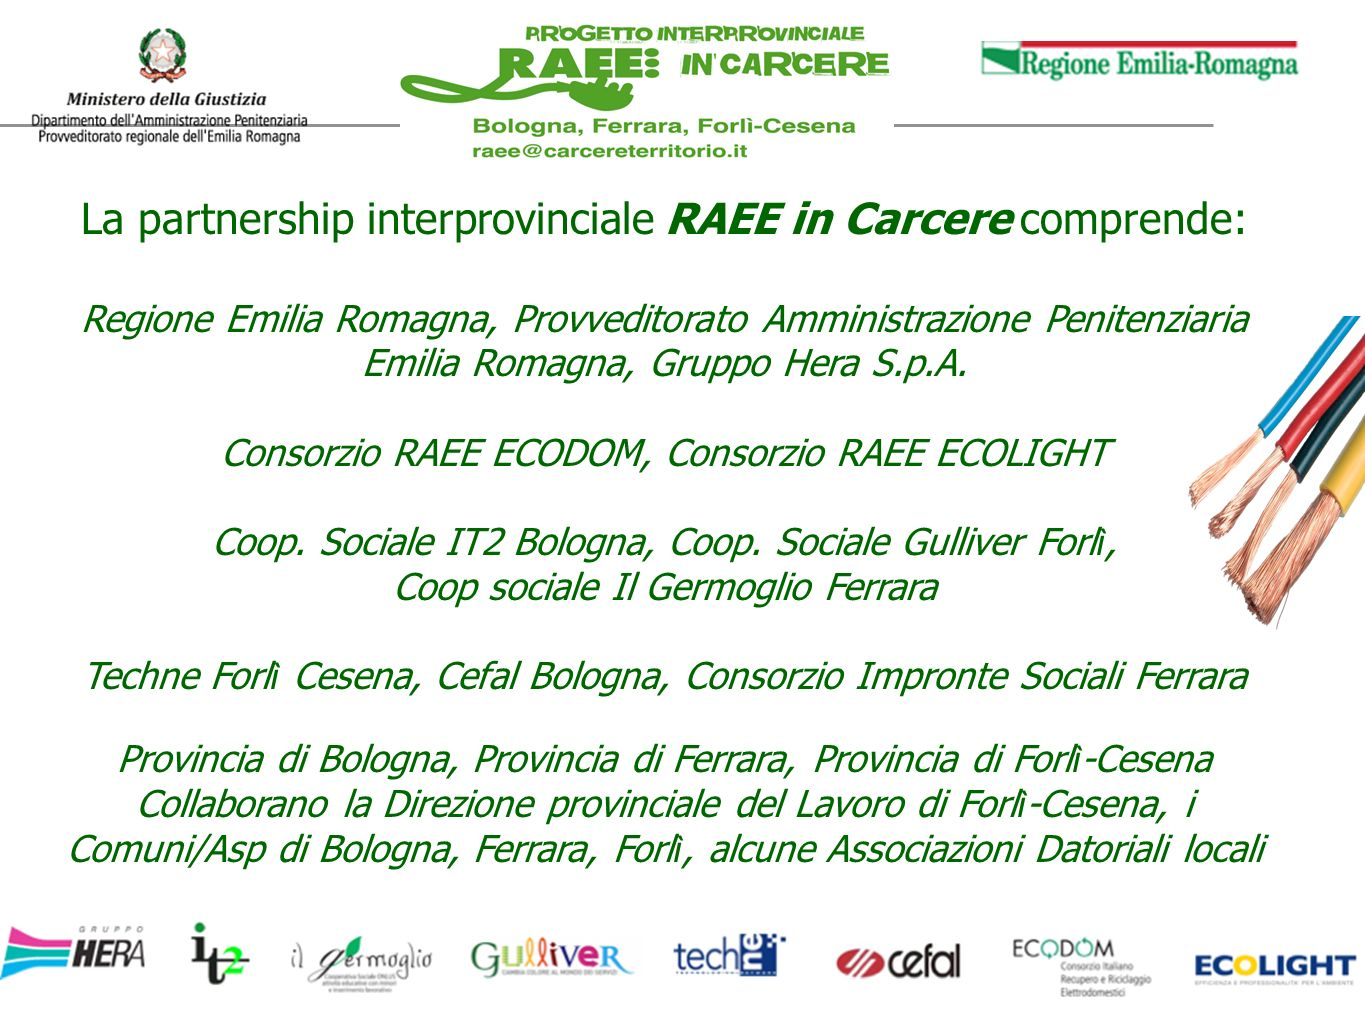 La partnership interprovinciale RAEE in Carcere comprende: